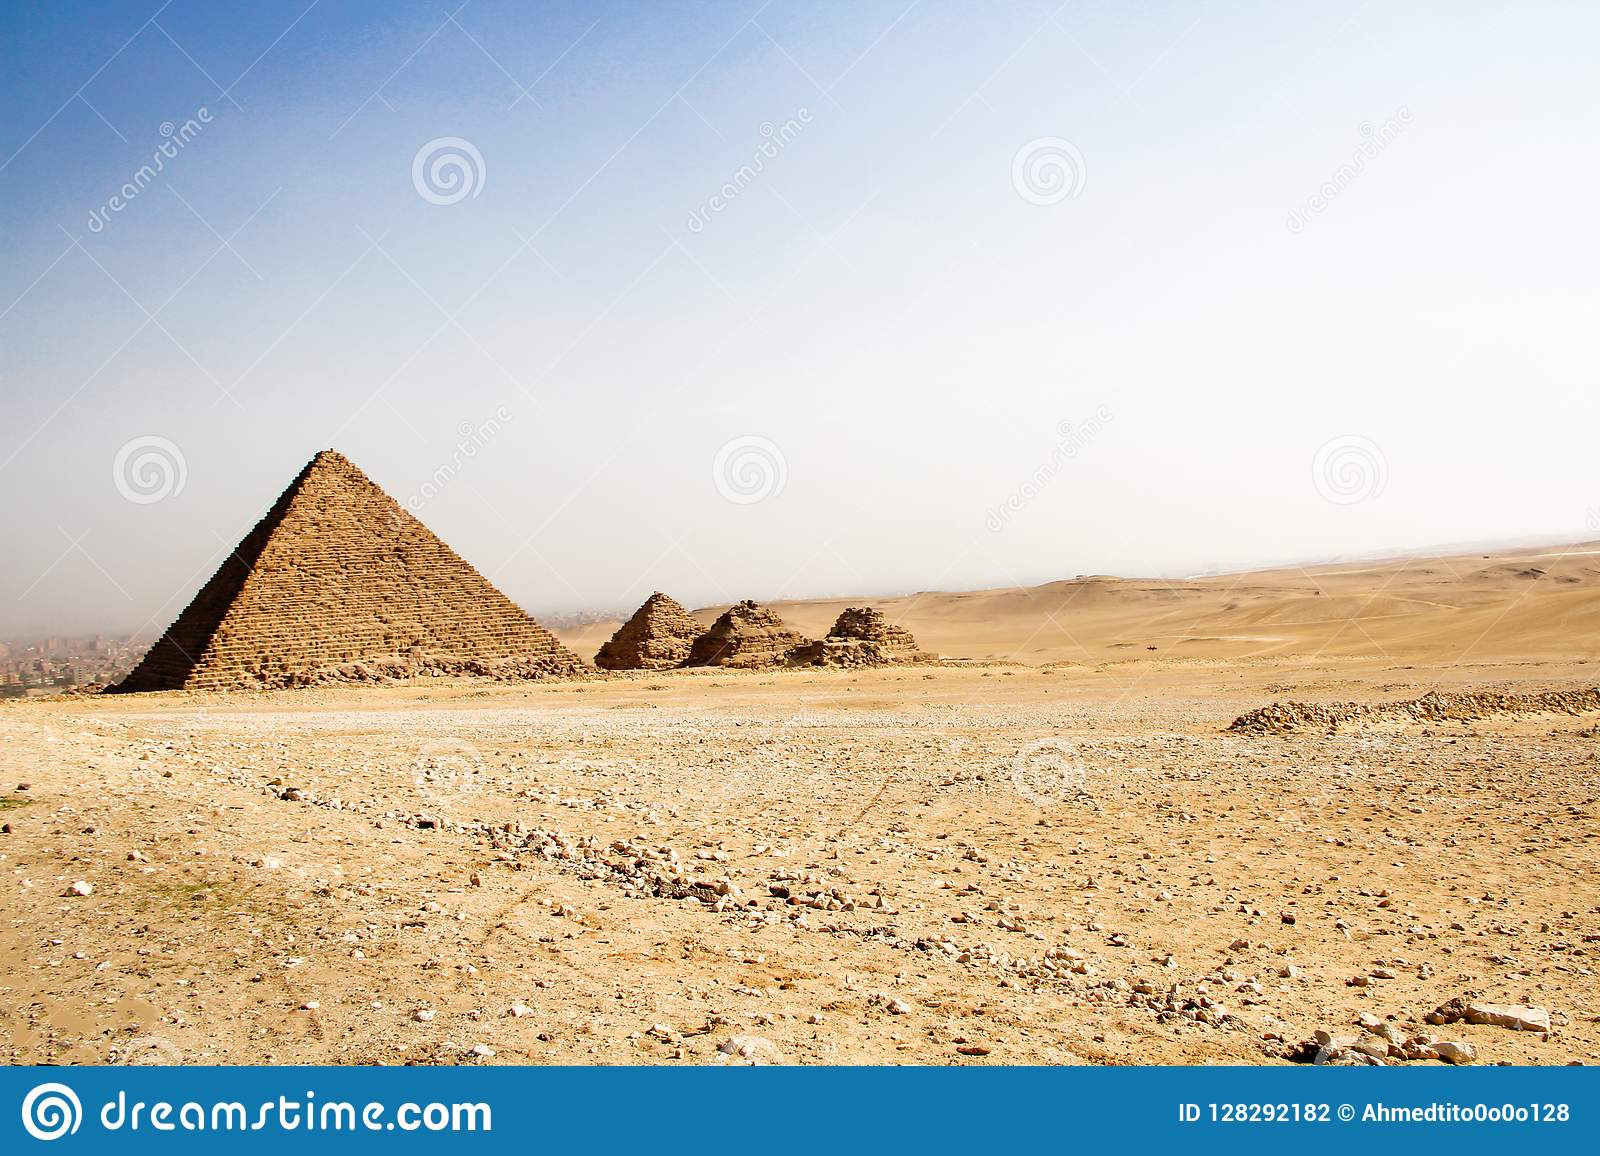 Small Pyramids Of Giza, Egypt Stock Photo - Image of cairo